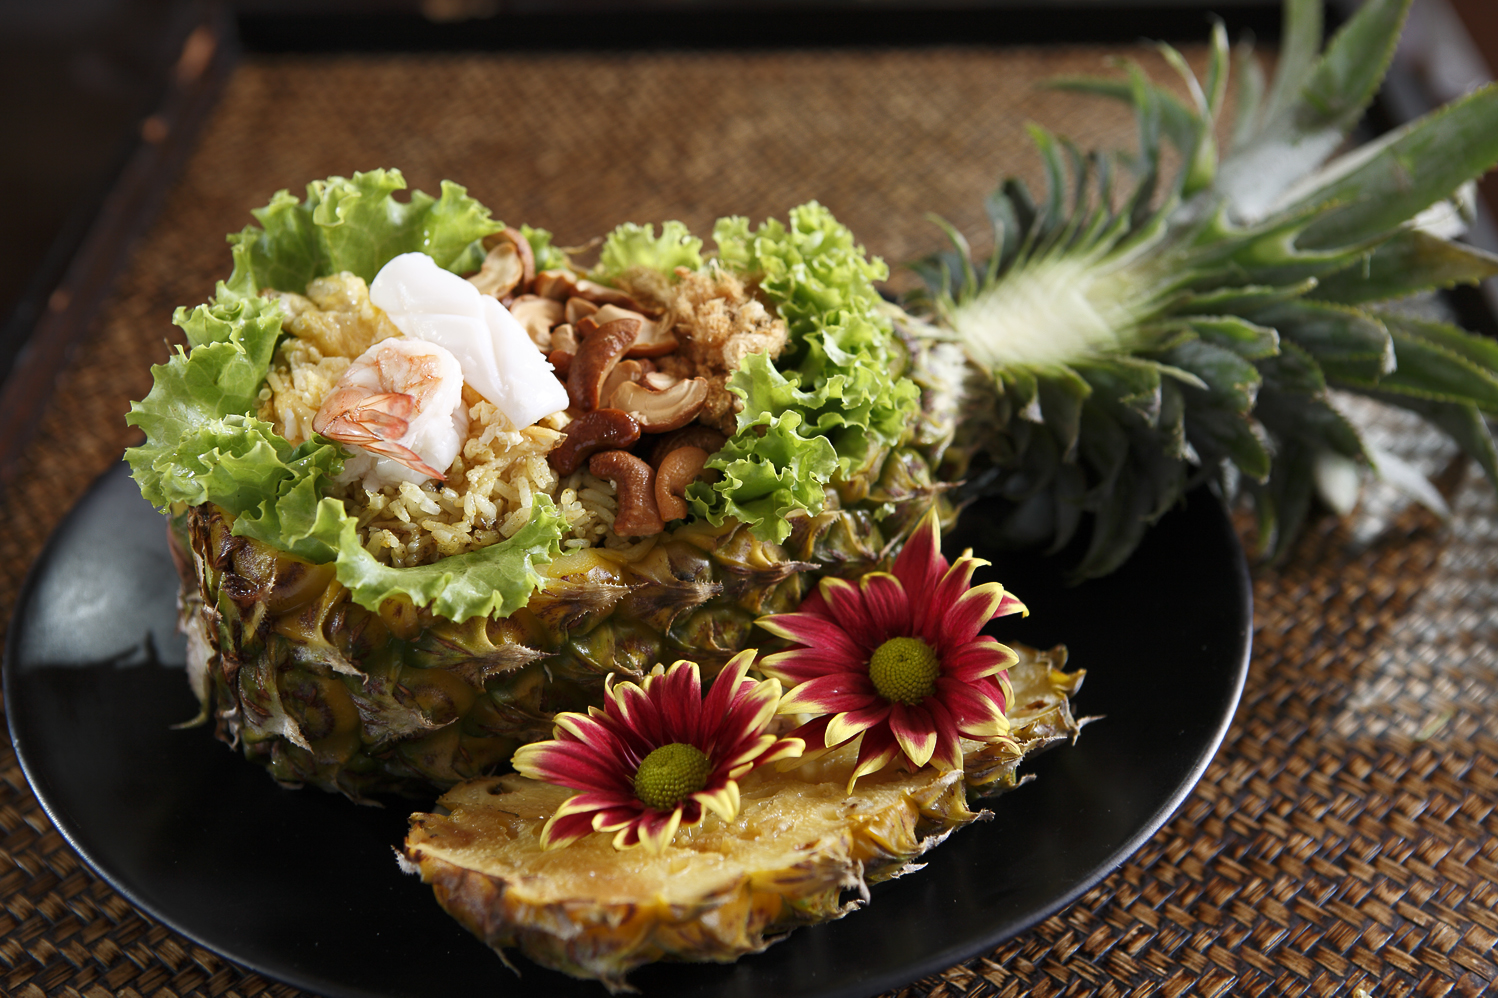 Baked-Rice-in-Pineapple | Courtesy of Home Dining Cafe and Lounge